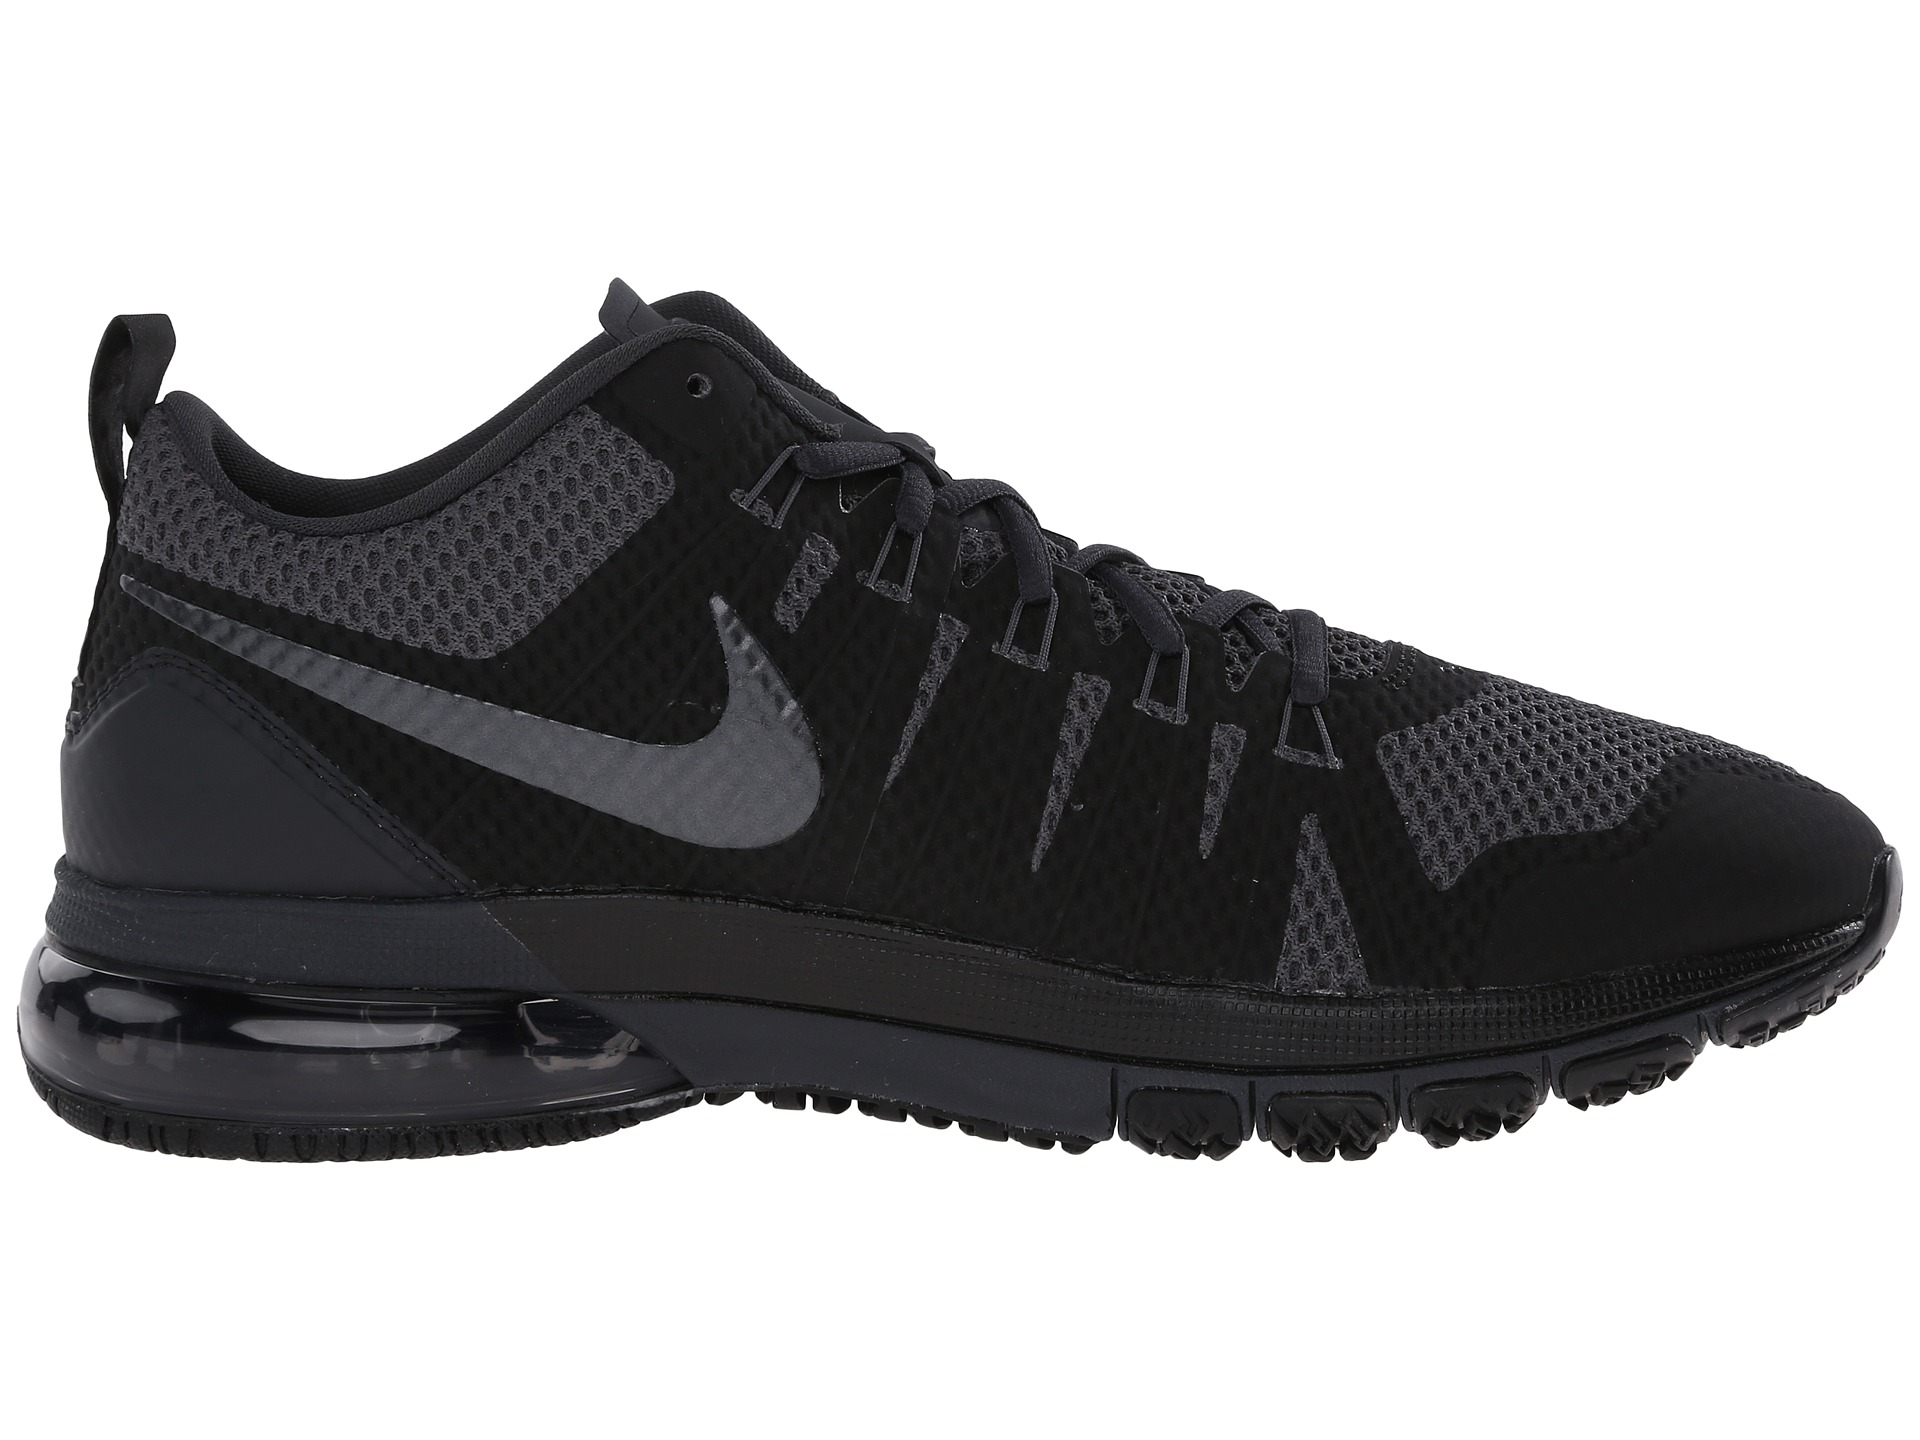 aa05ba8d2f4dab ... lyst nike air max tr180 low top sneakers in gray for men